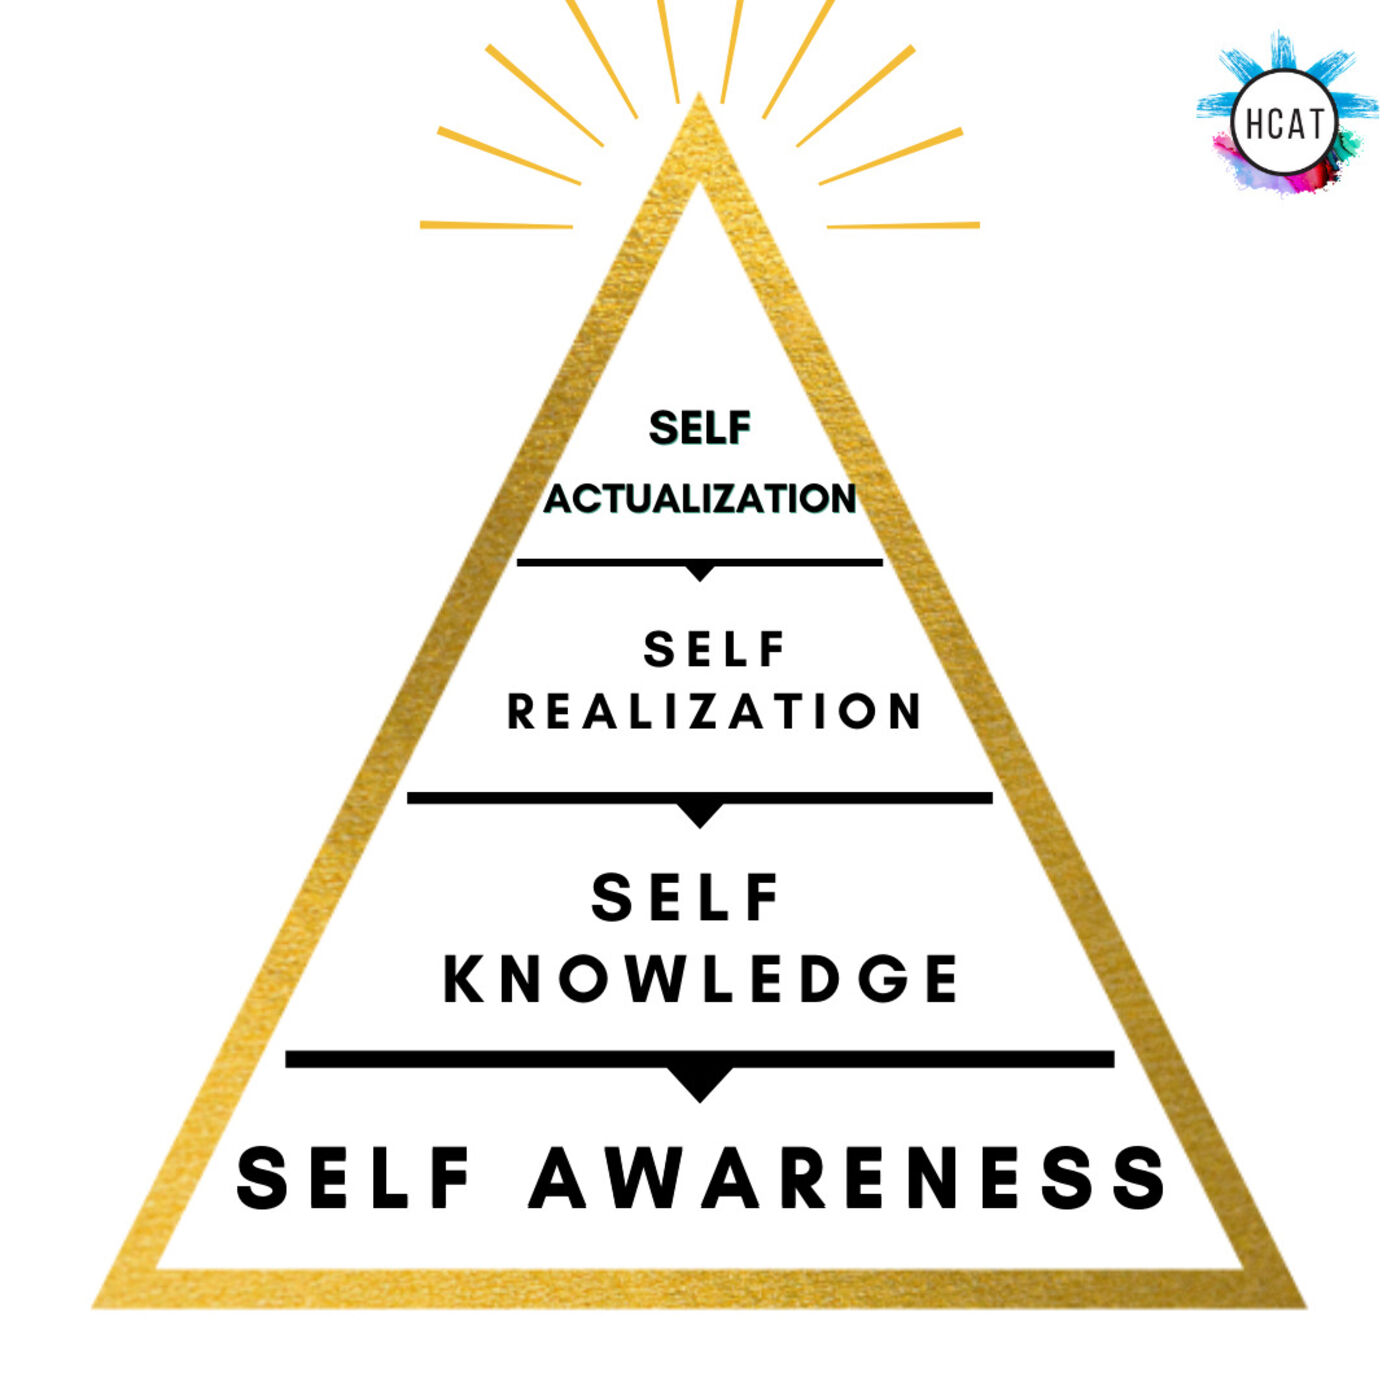 The Self Actualization Pyramid